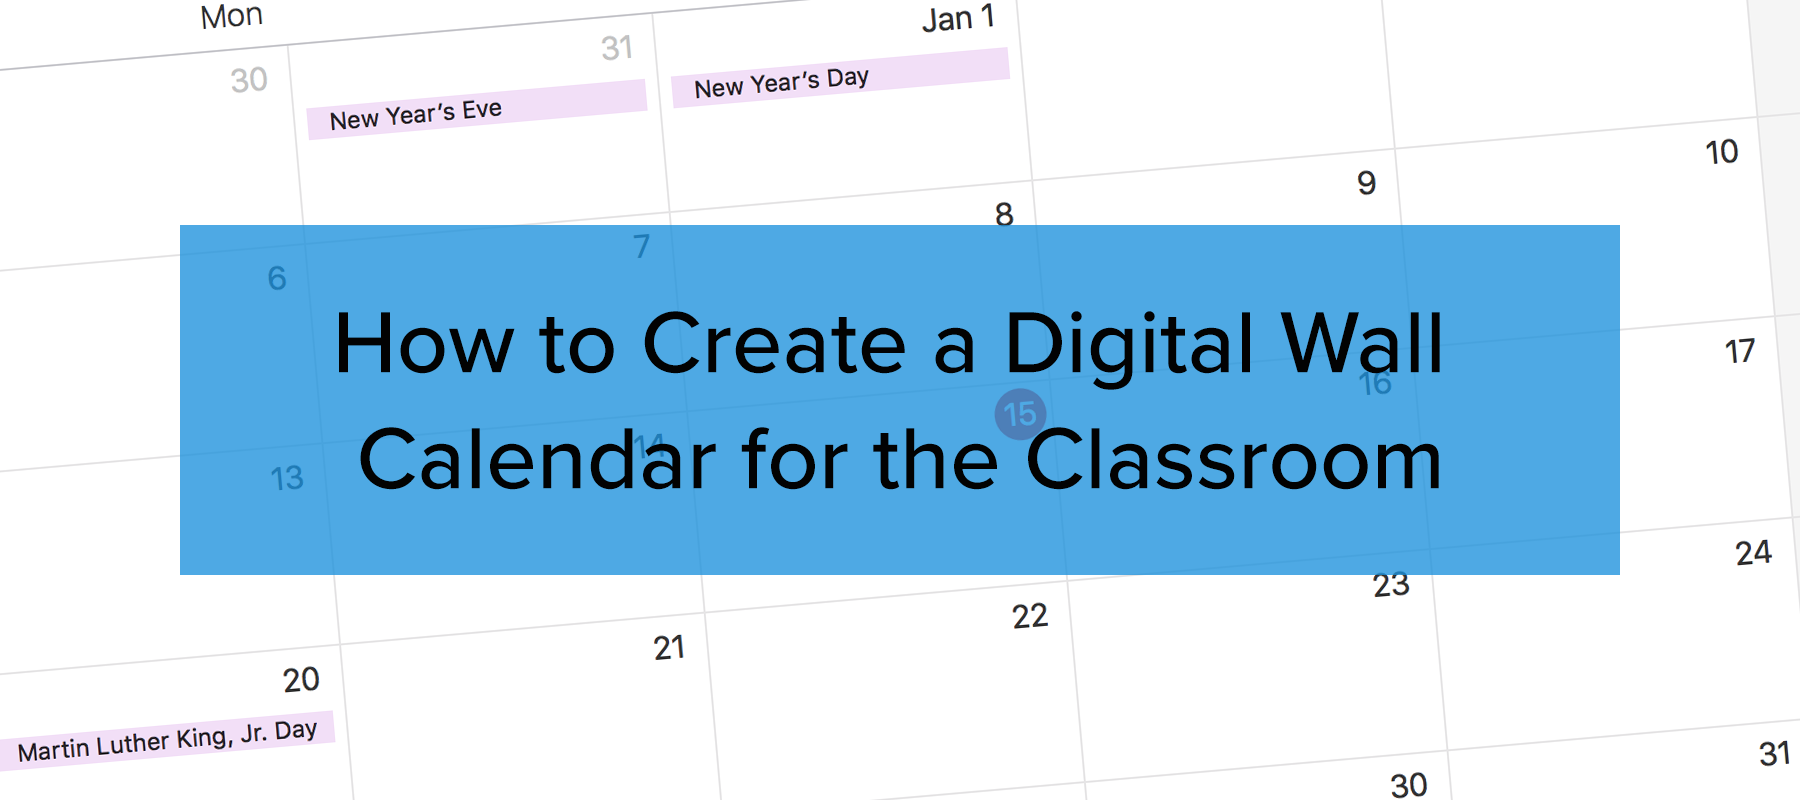 How To Create A Digital Wall Calendar For The Classroom